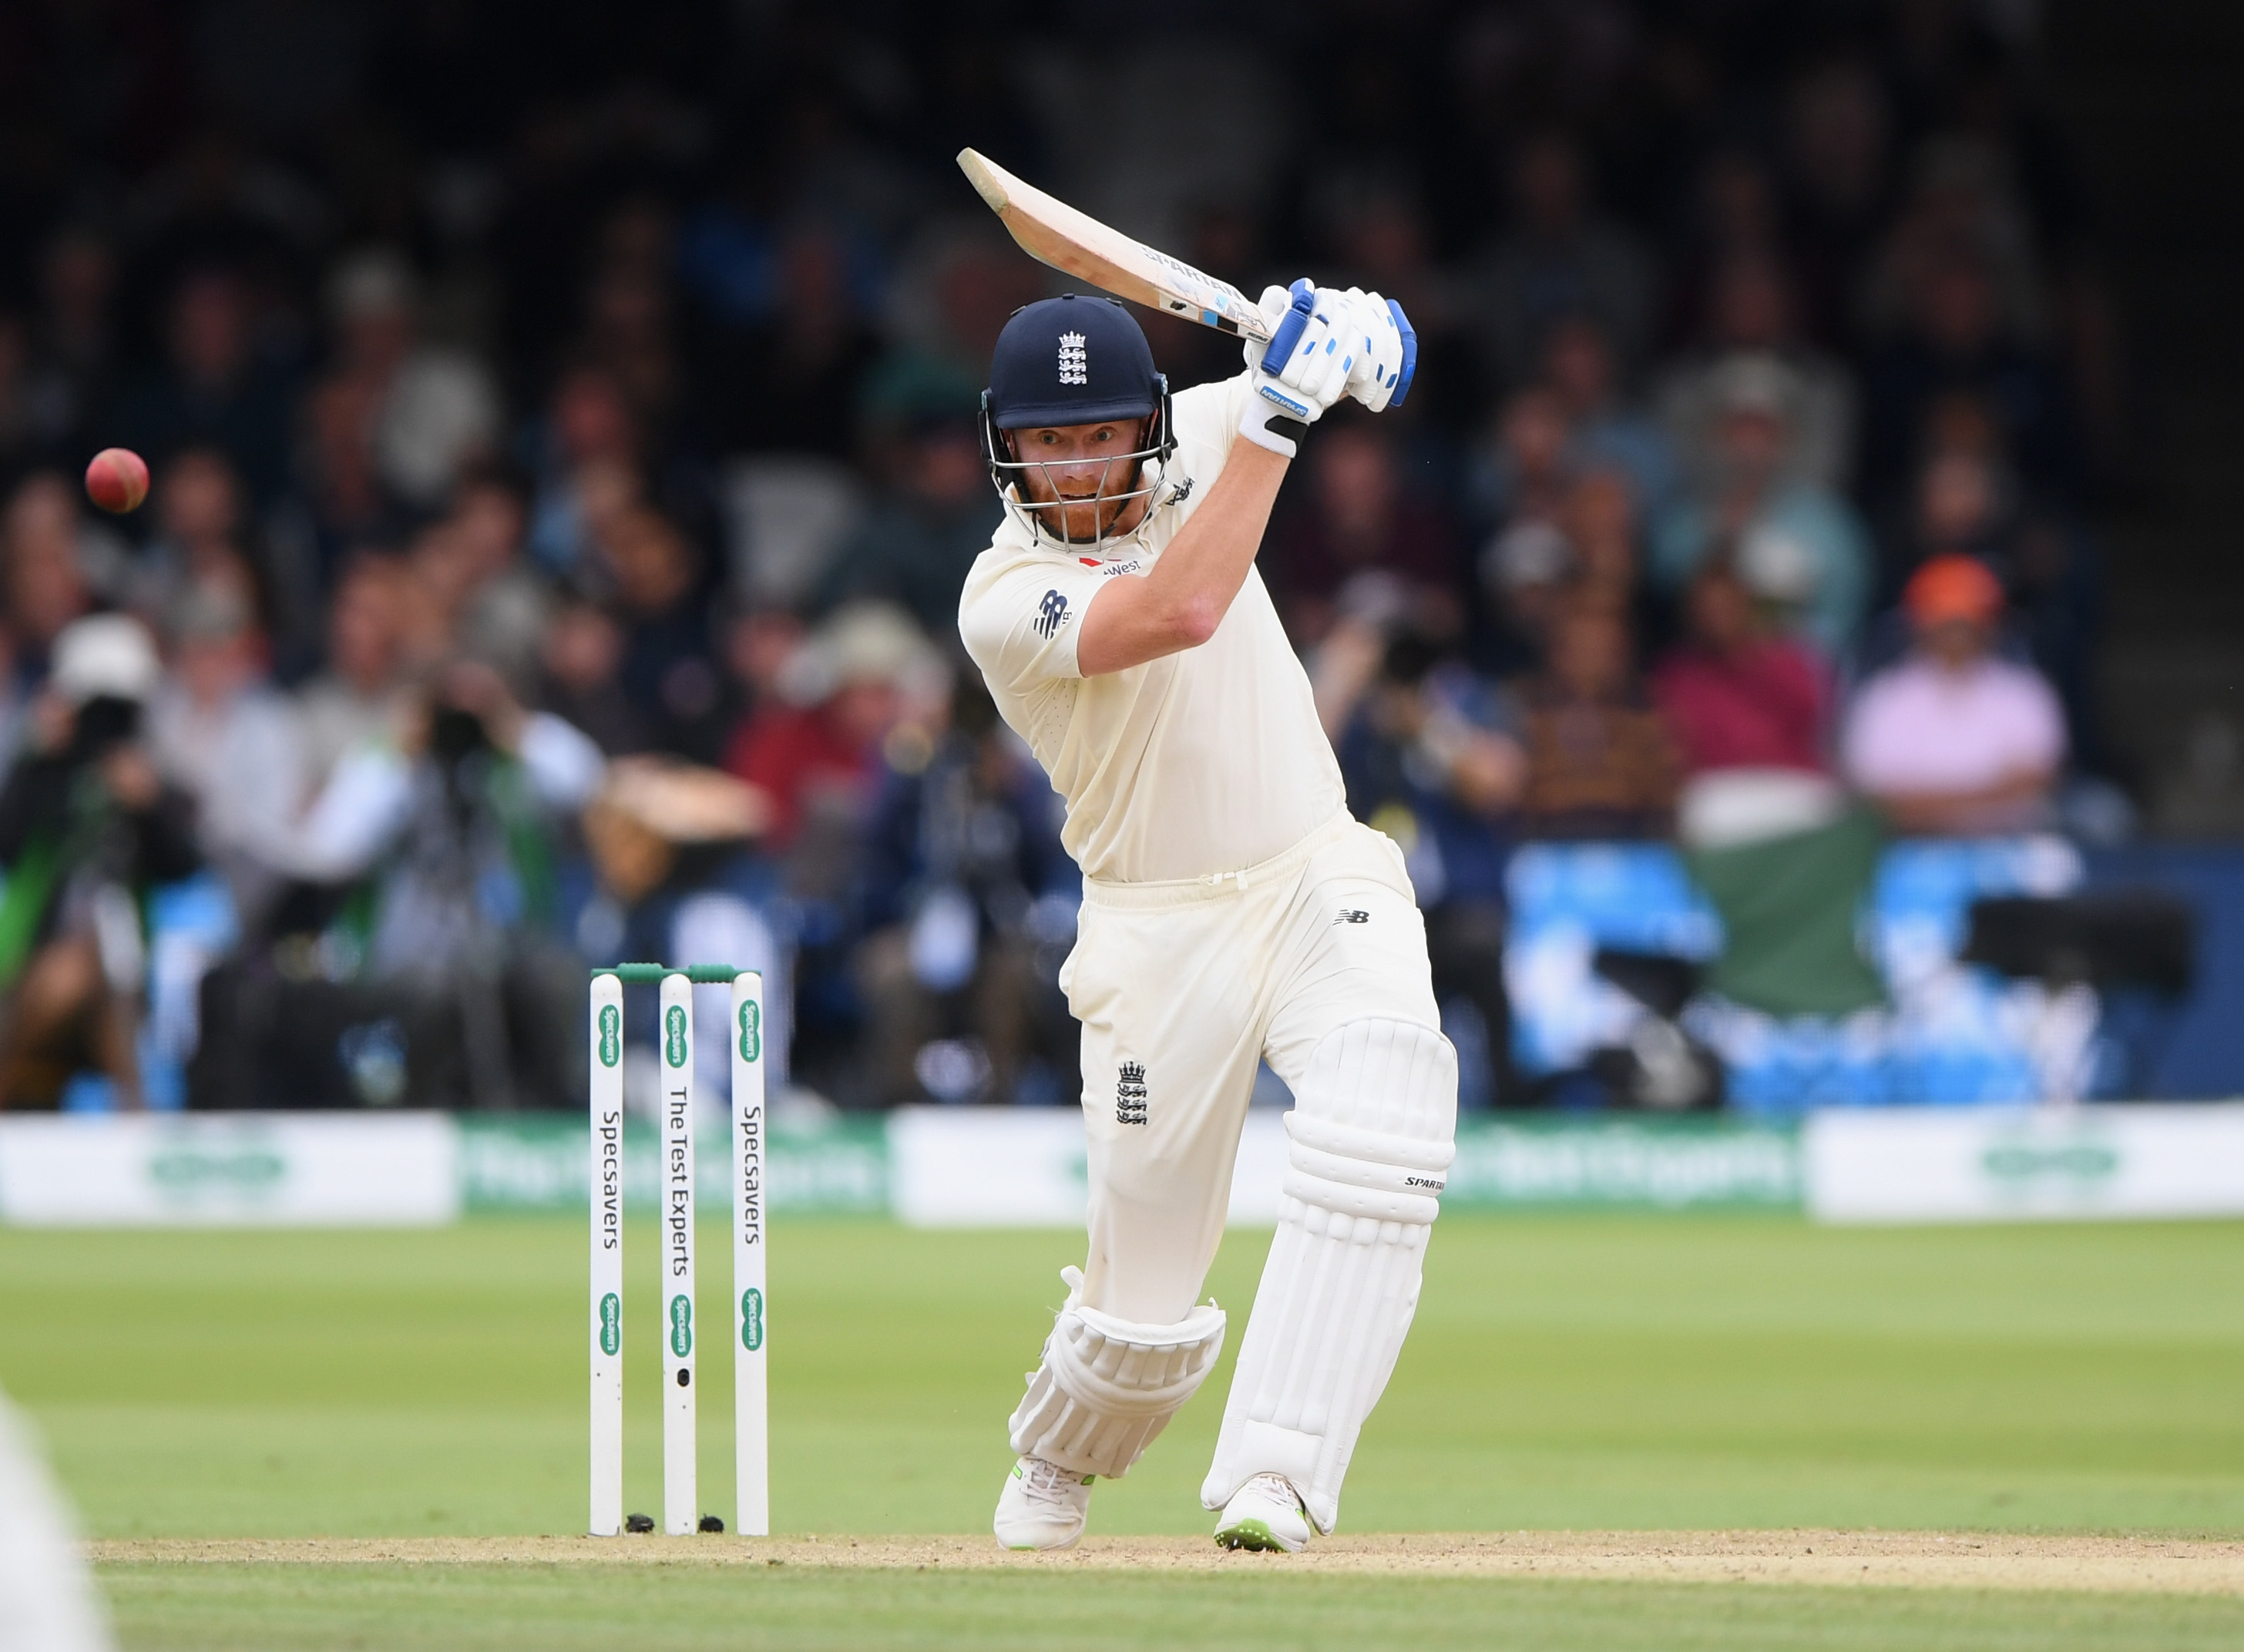 Jonny Bairstow has been in some fantastic form with the bat. (Getty)